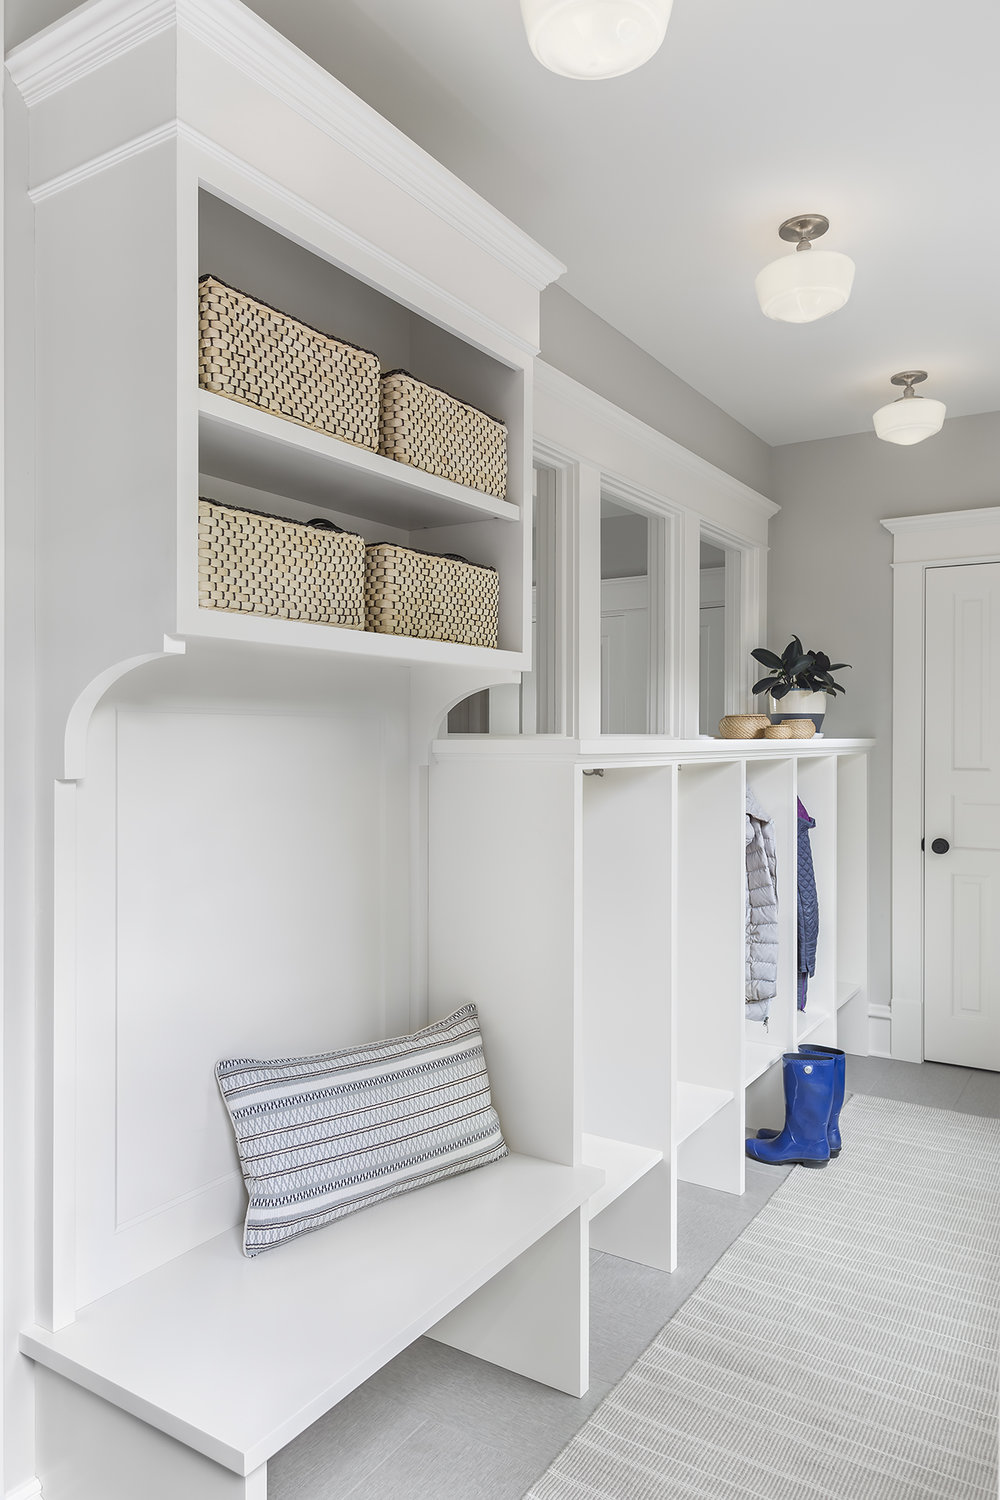 Enclosing the back stoop of the house allowed for a new mudroom space. Individual cubbies for each family member help contain clutter and a heated tile floor keeps the room cozy.